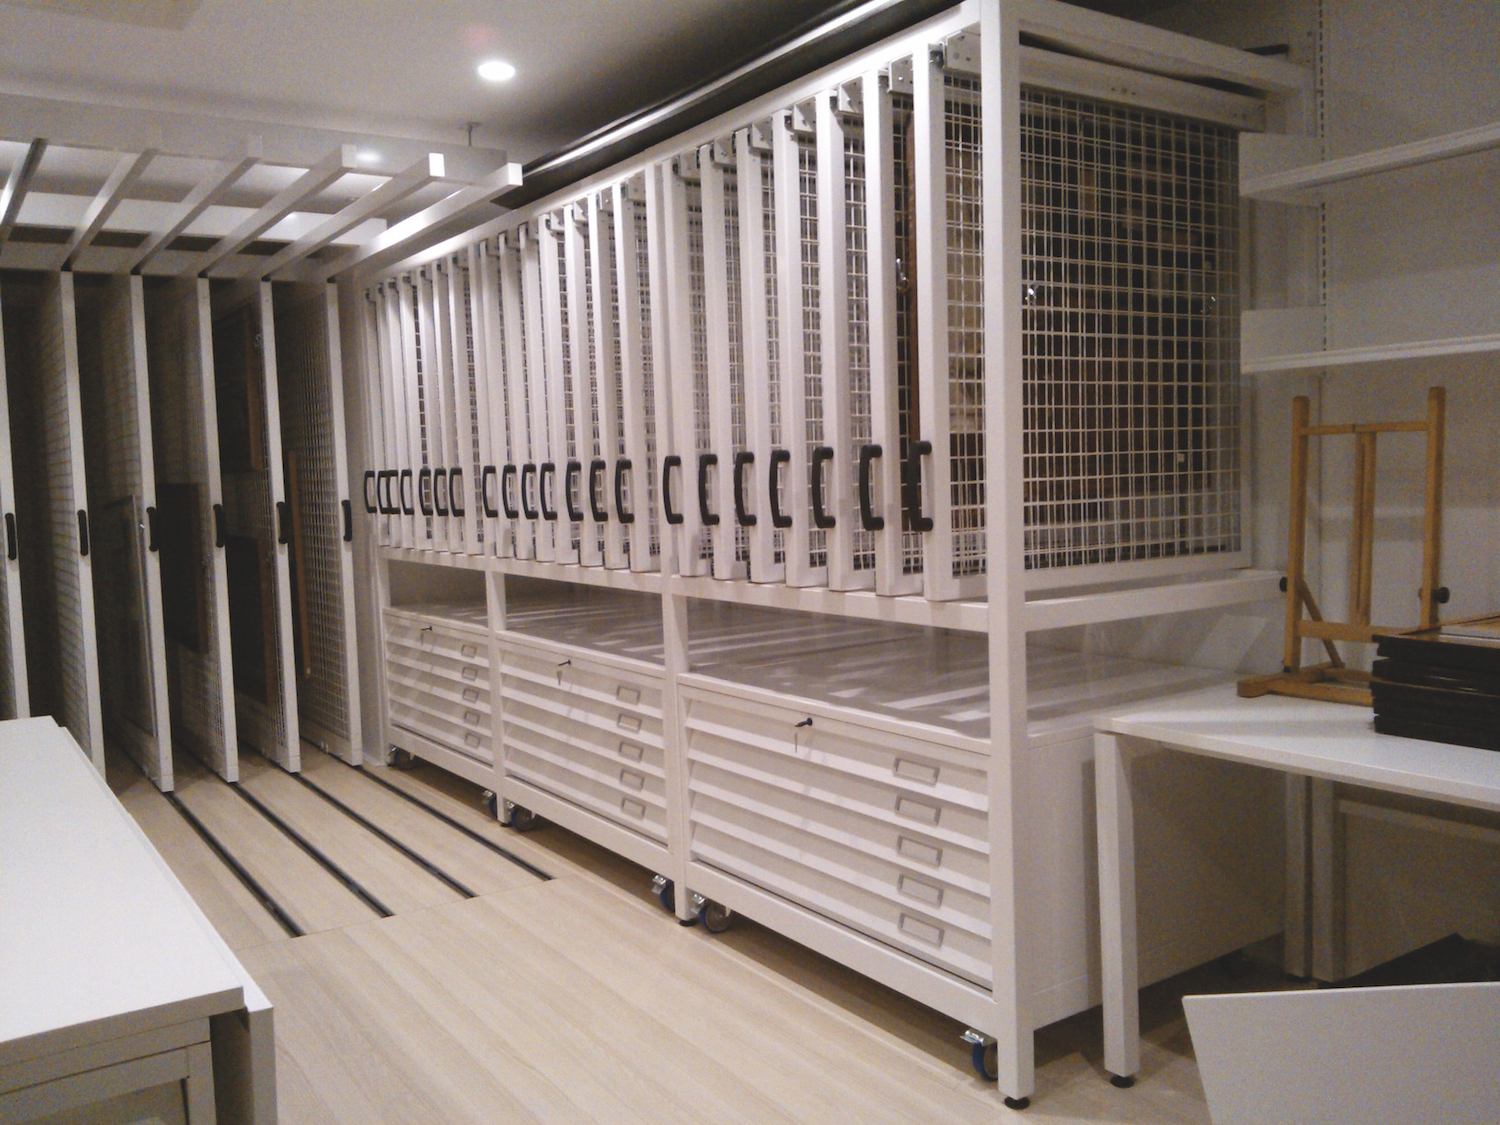 Half height picture racking with moveable plan chest below.